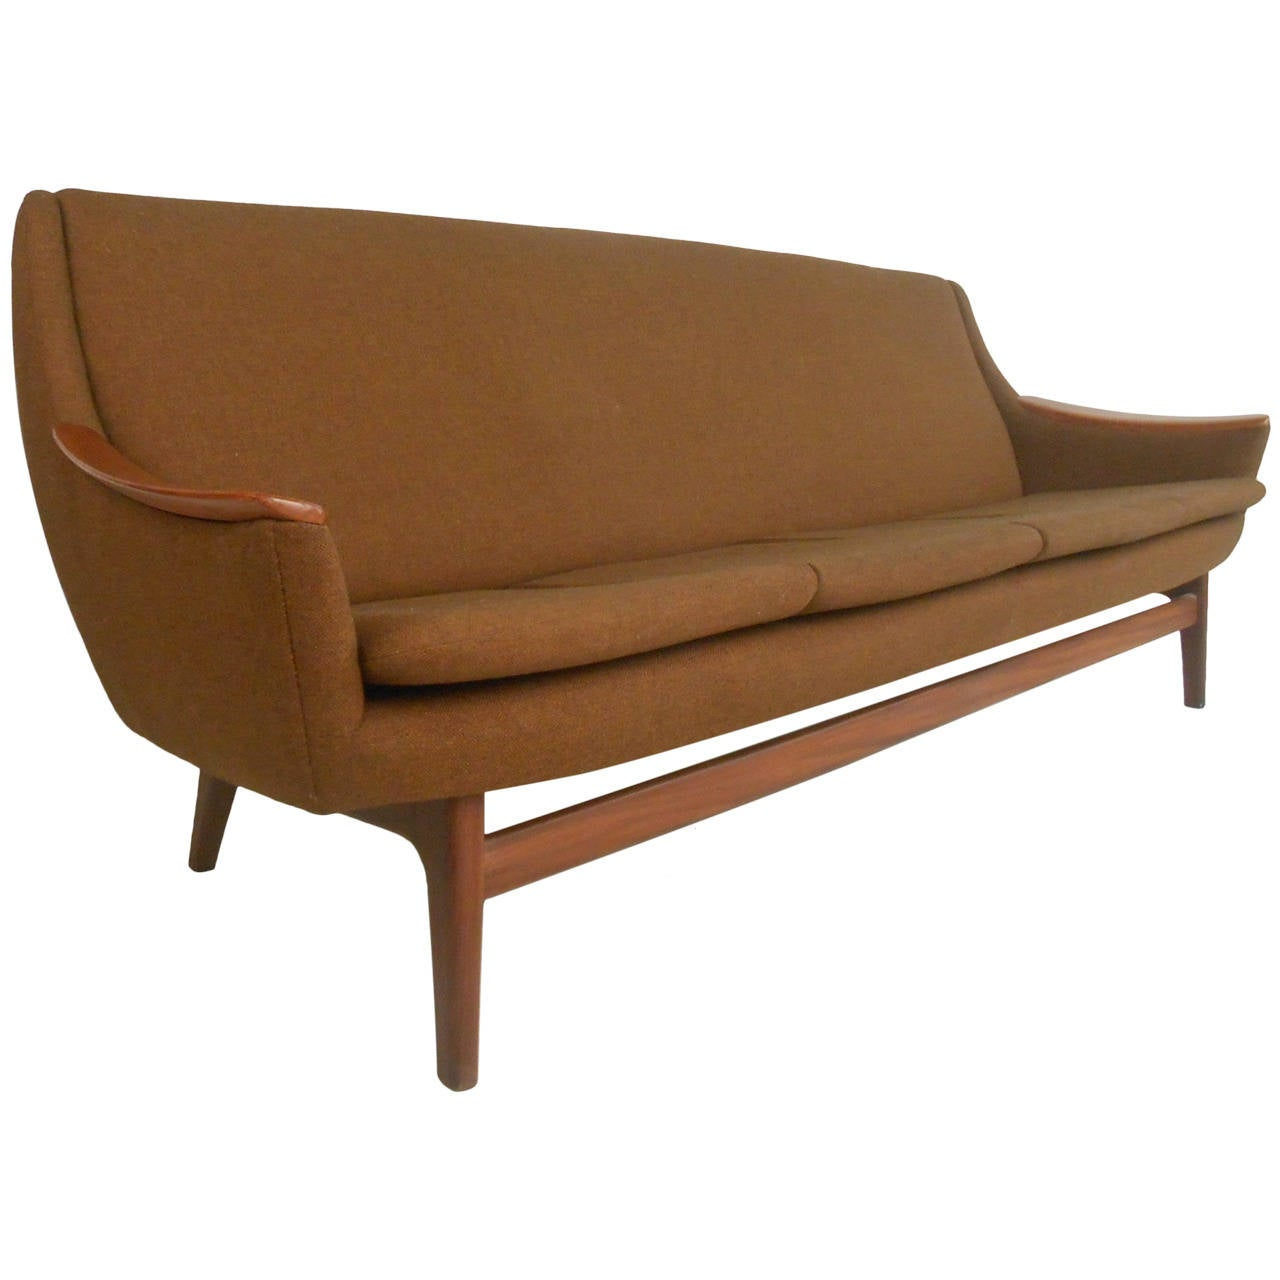 Scandinavian Furniture Sale Long Scandinavian Modern Sofa For Sale At 1stdibs